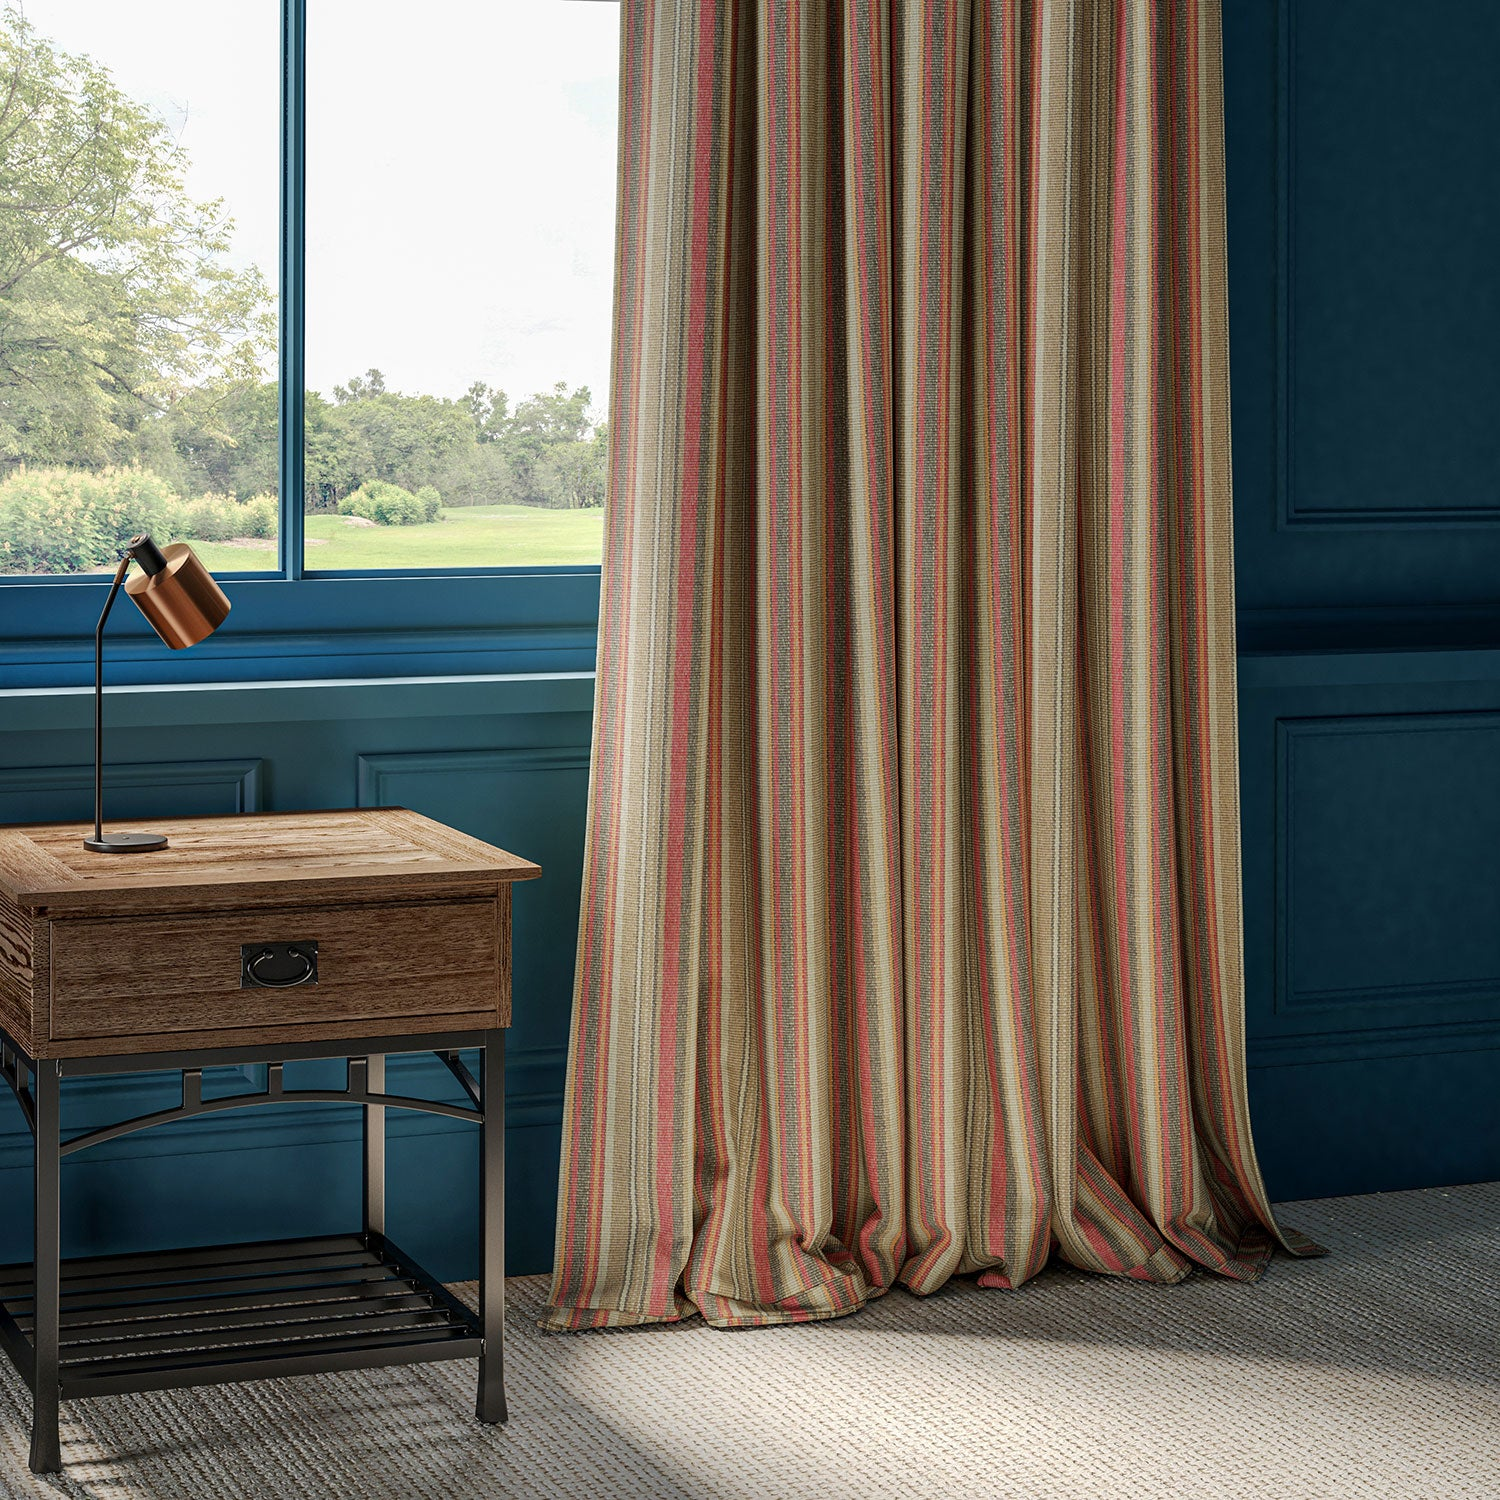 Curtains with multi-coloured vertical stripe.